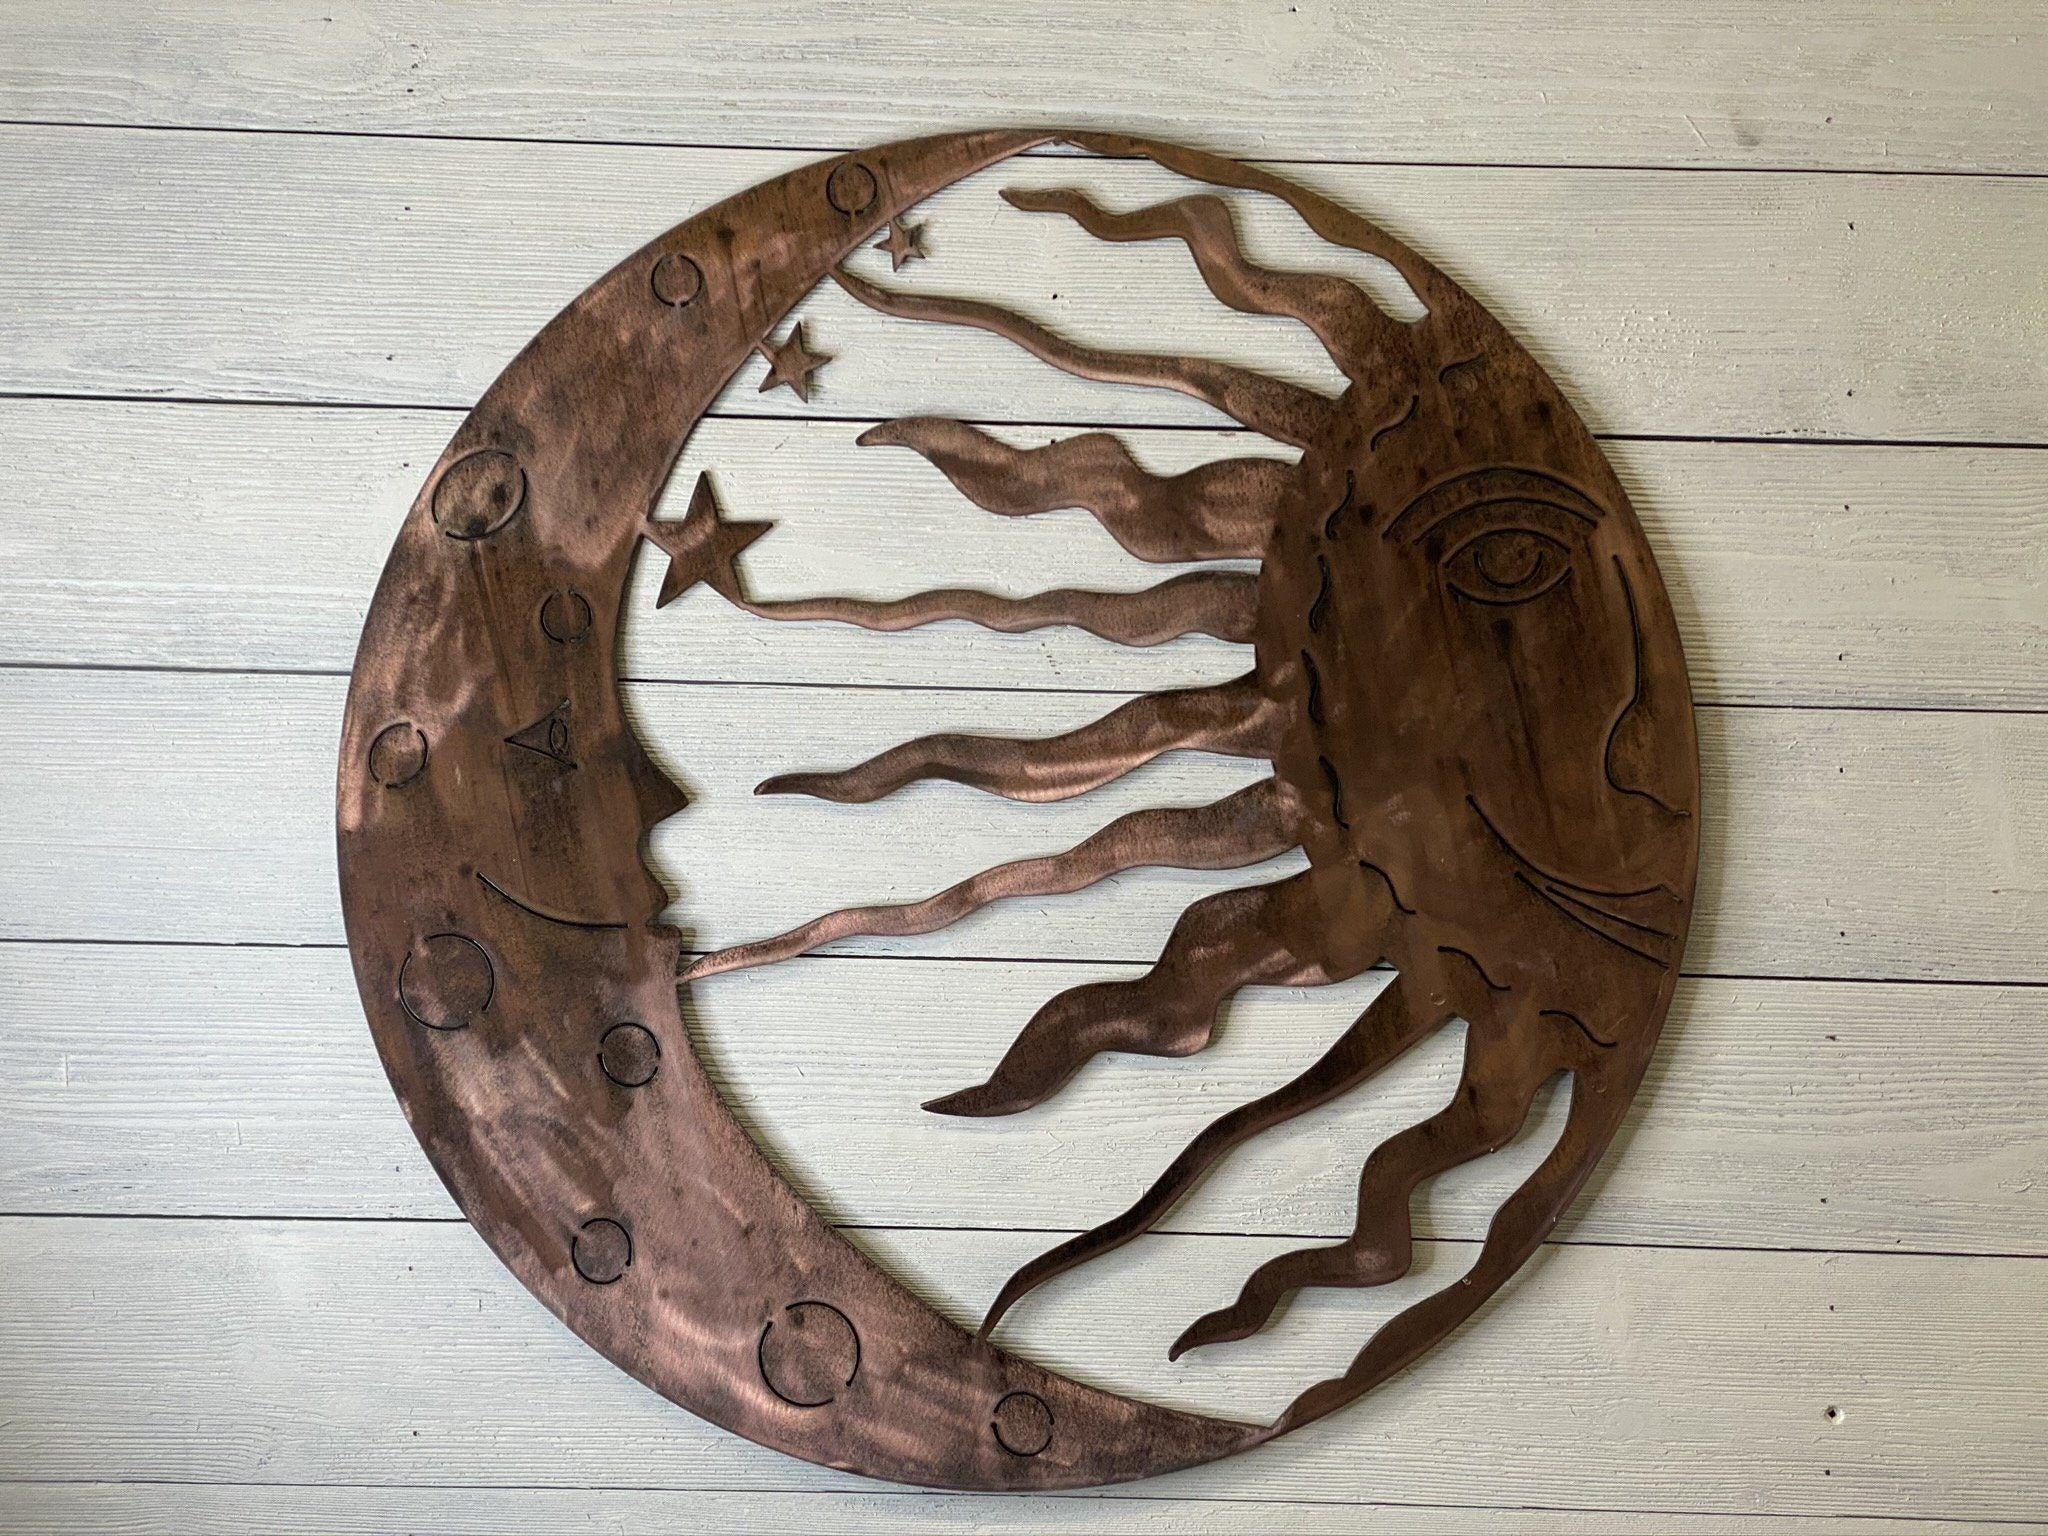 Sun and Moon Wall Art Third Shift Fabrication 24"